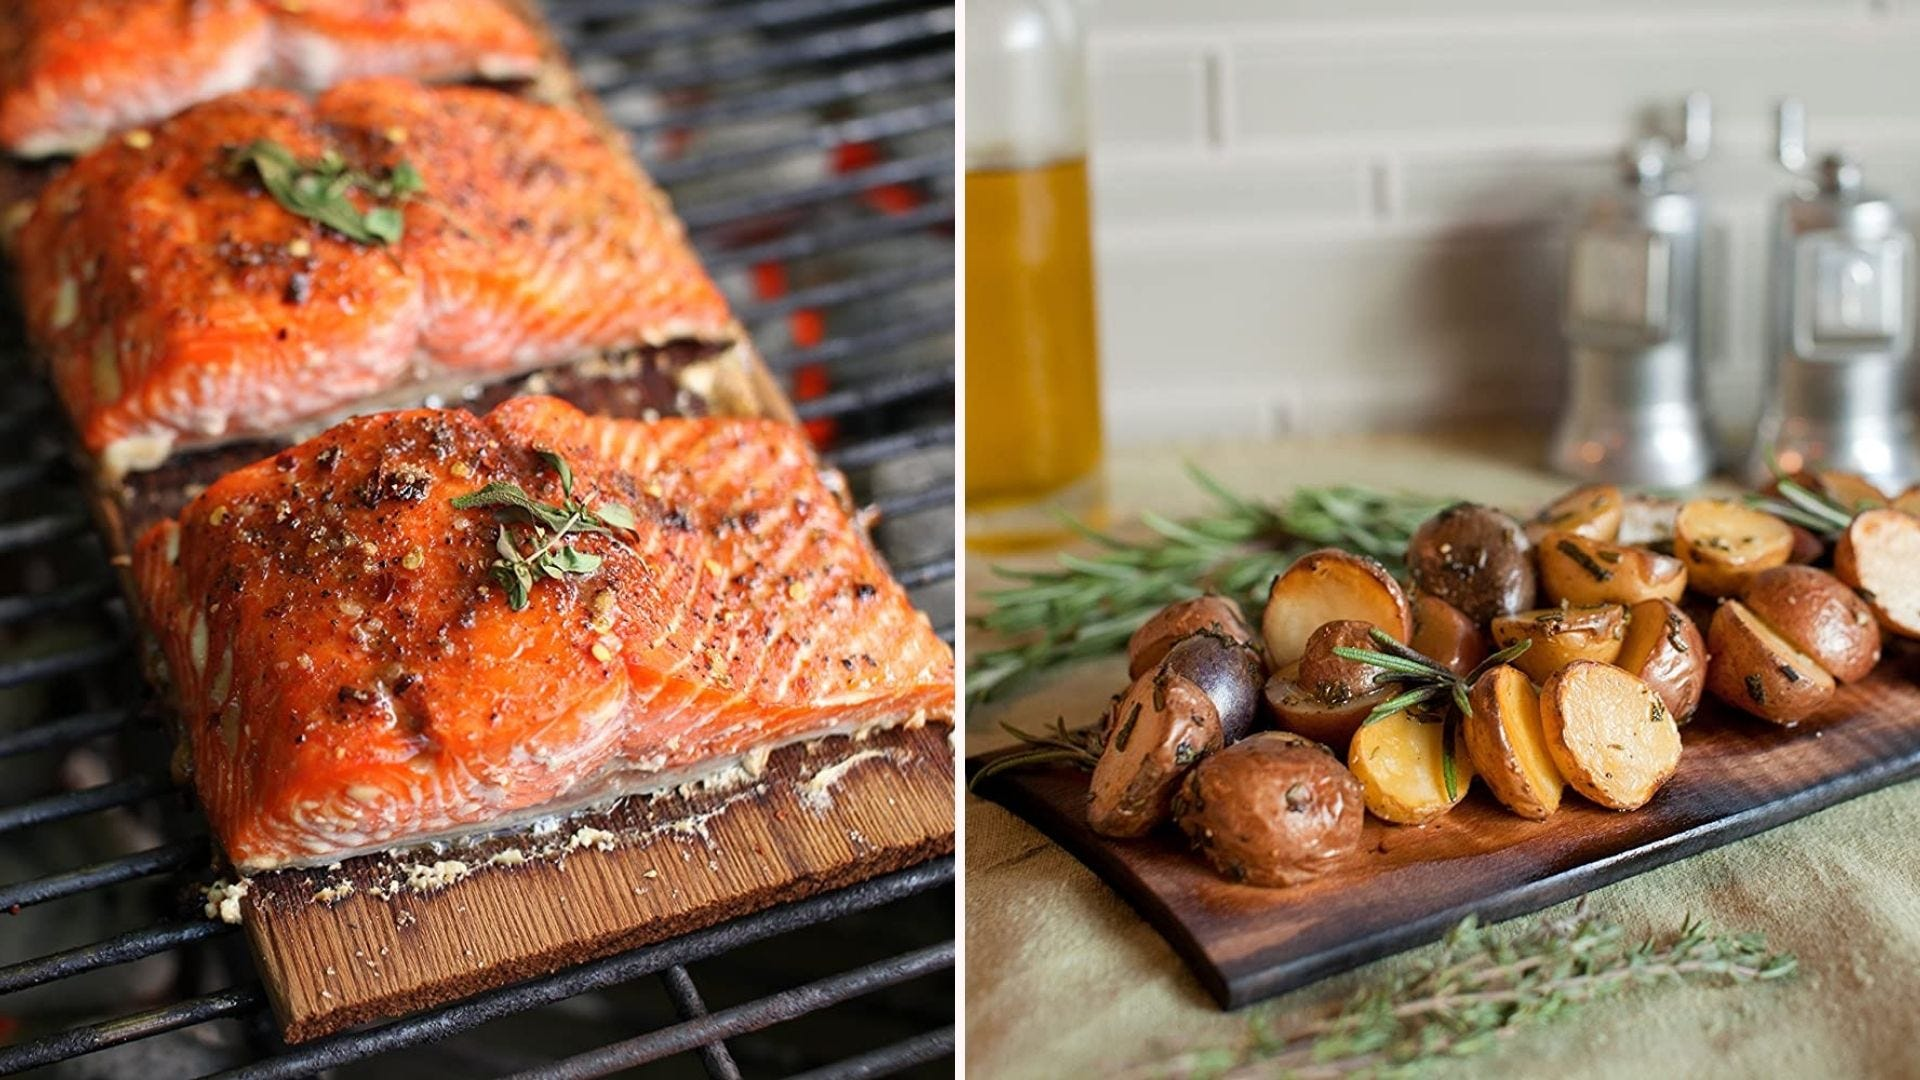 Two images: The left image is of three salmon filets sitting on top of a plank on a grill and the right image is of grilled potatoes sitting on a plank by Wood Fire Grilling Co.